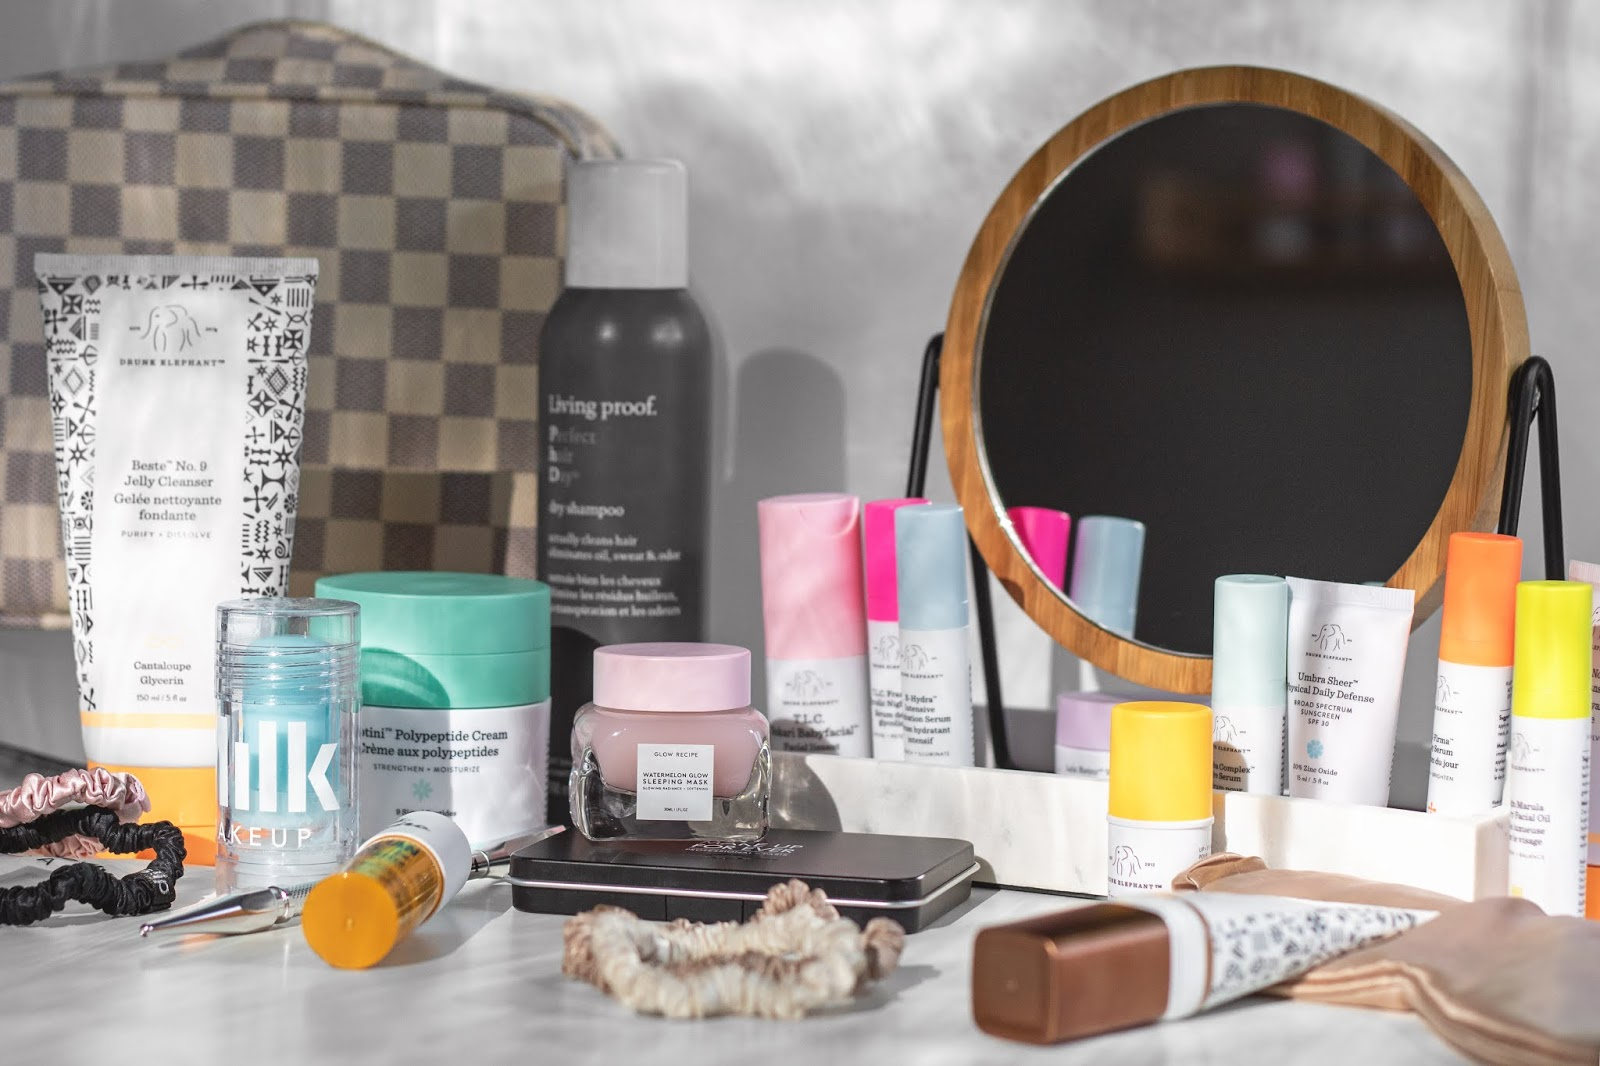 Sephora Favorite Beauty and Haircare Products Spring Savings Event